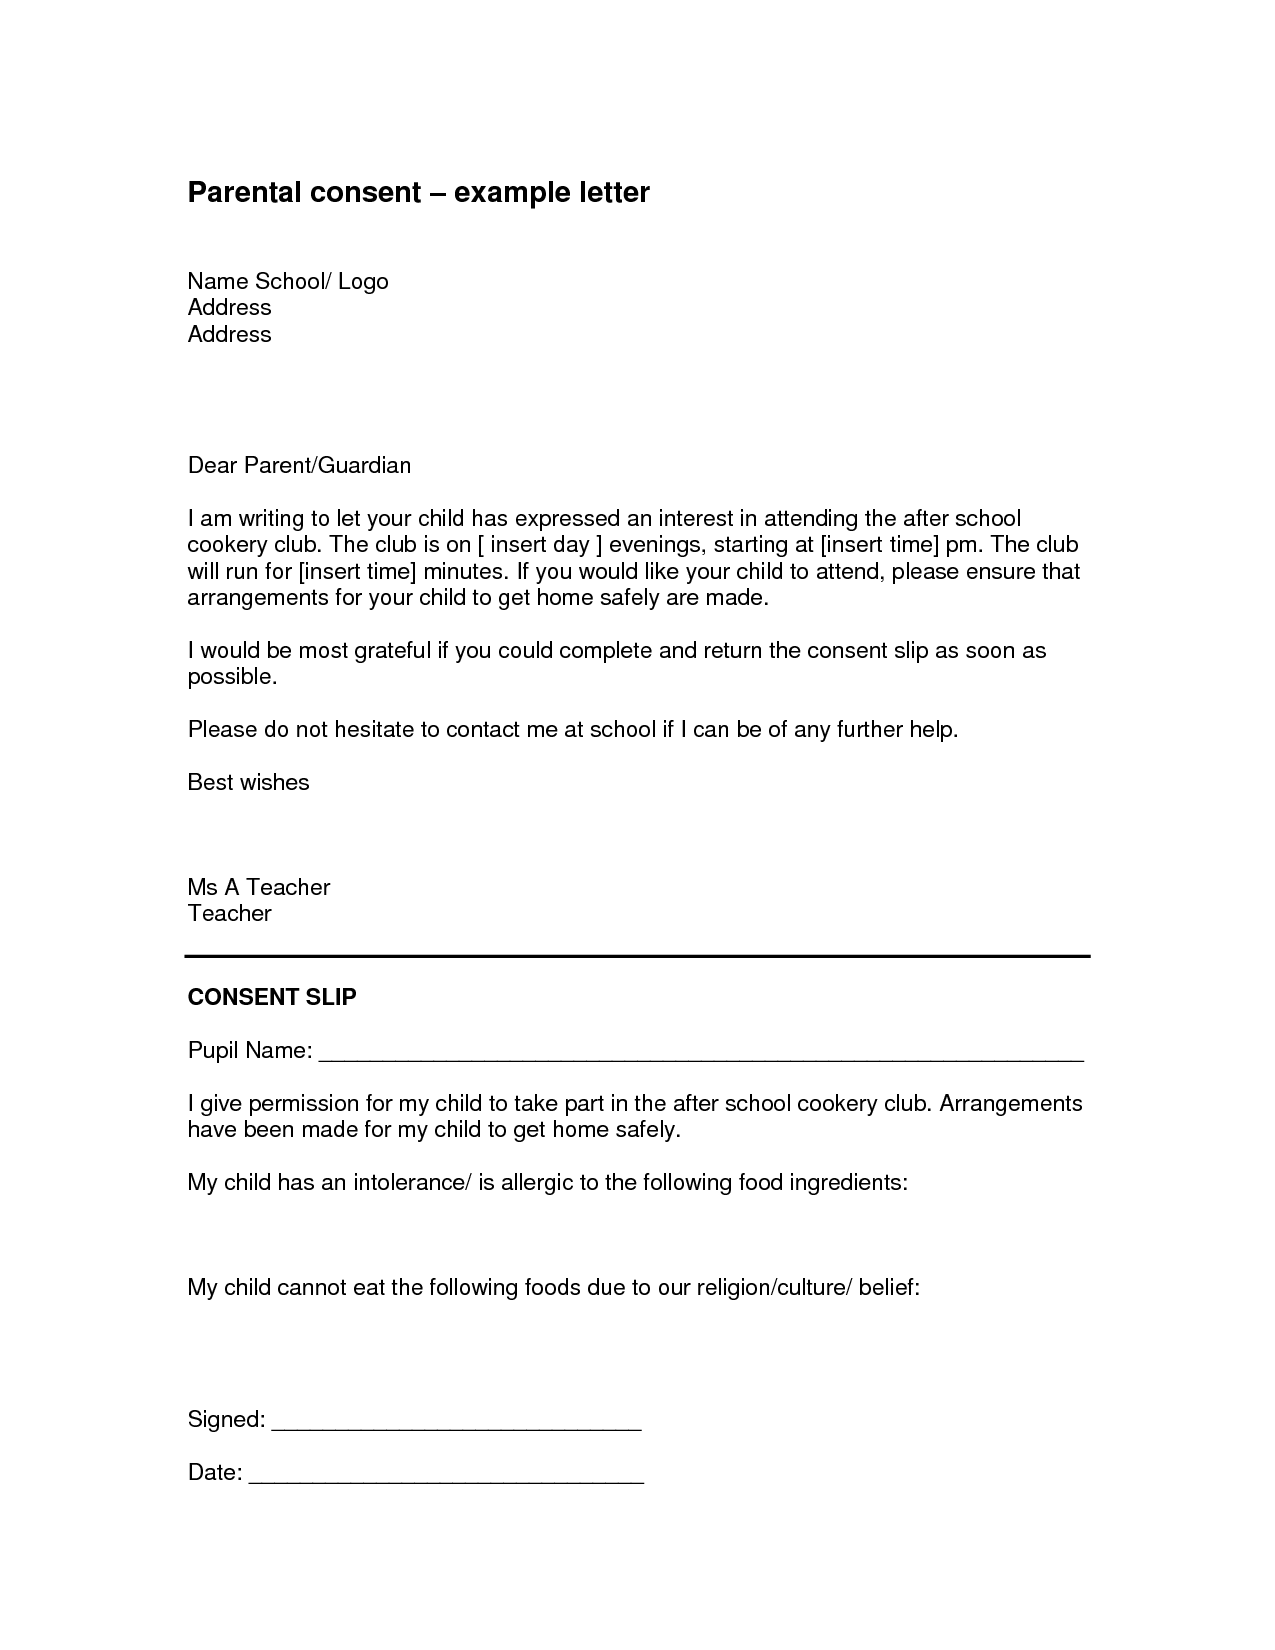 Parental Travel Consent Template Examples – Parents Consent Letter for Work